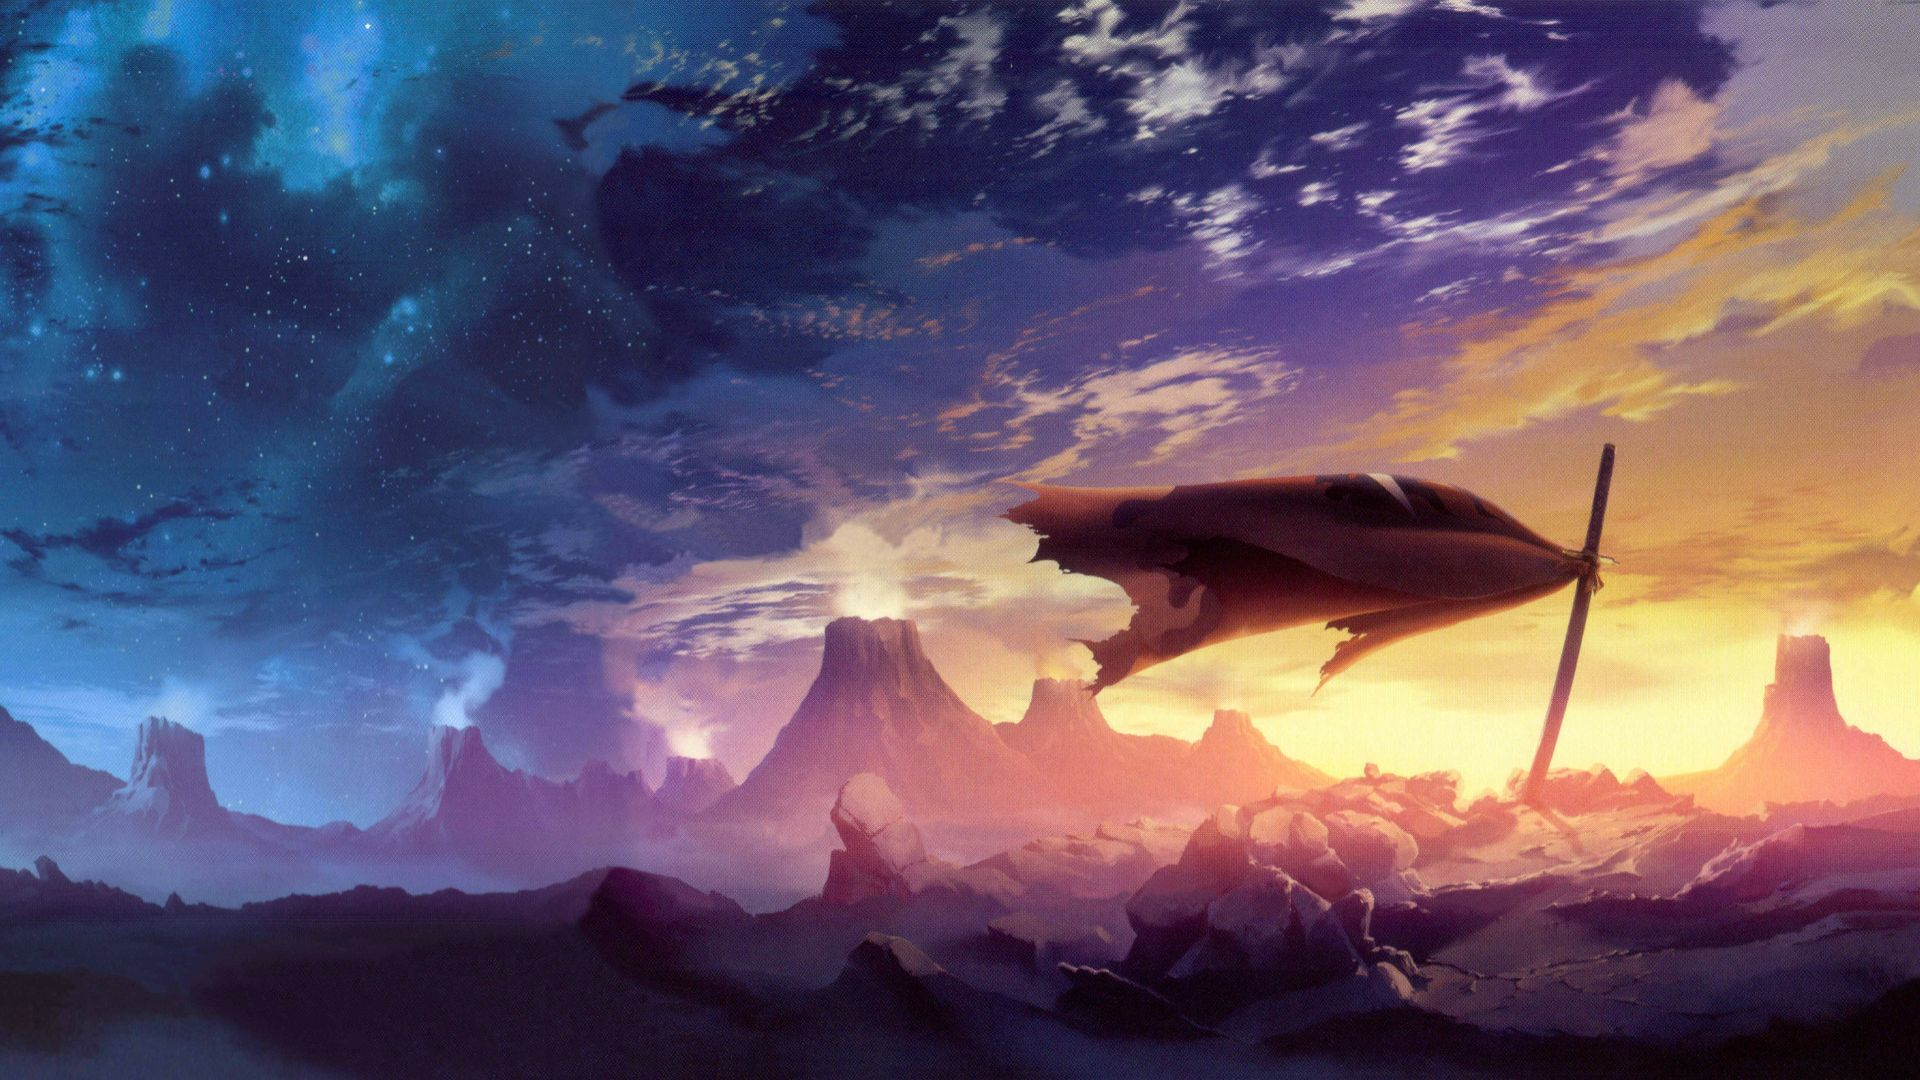 Chill Anime Wallpapers   Top Chill Anime Backgrounds 1920x1080